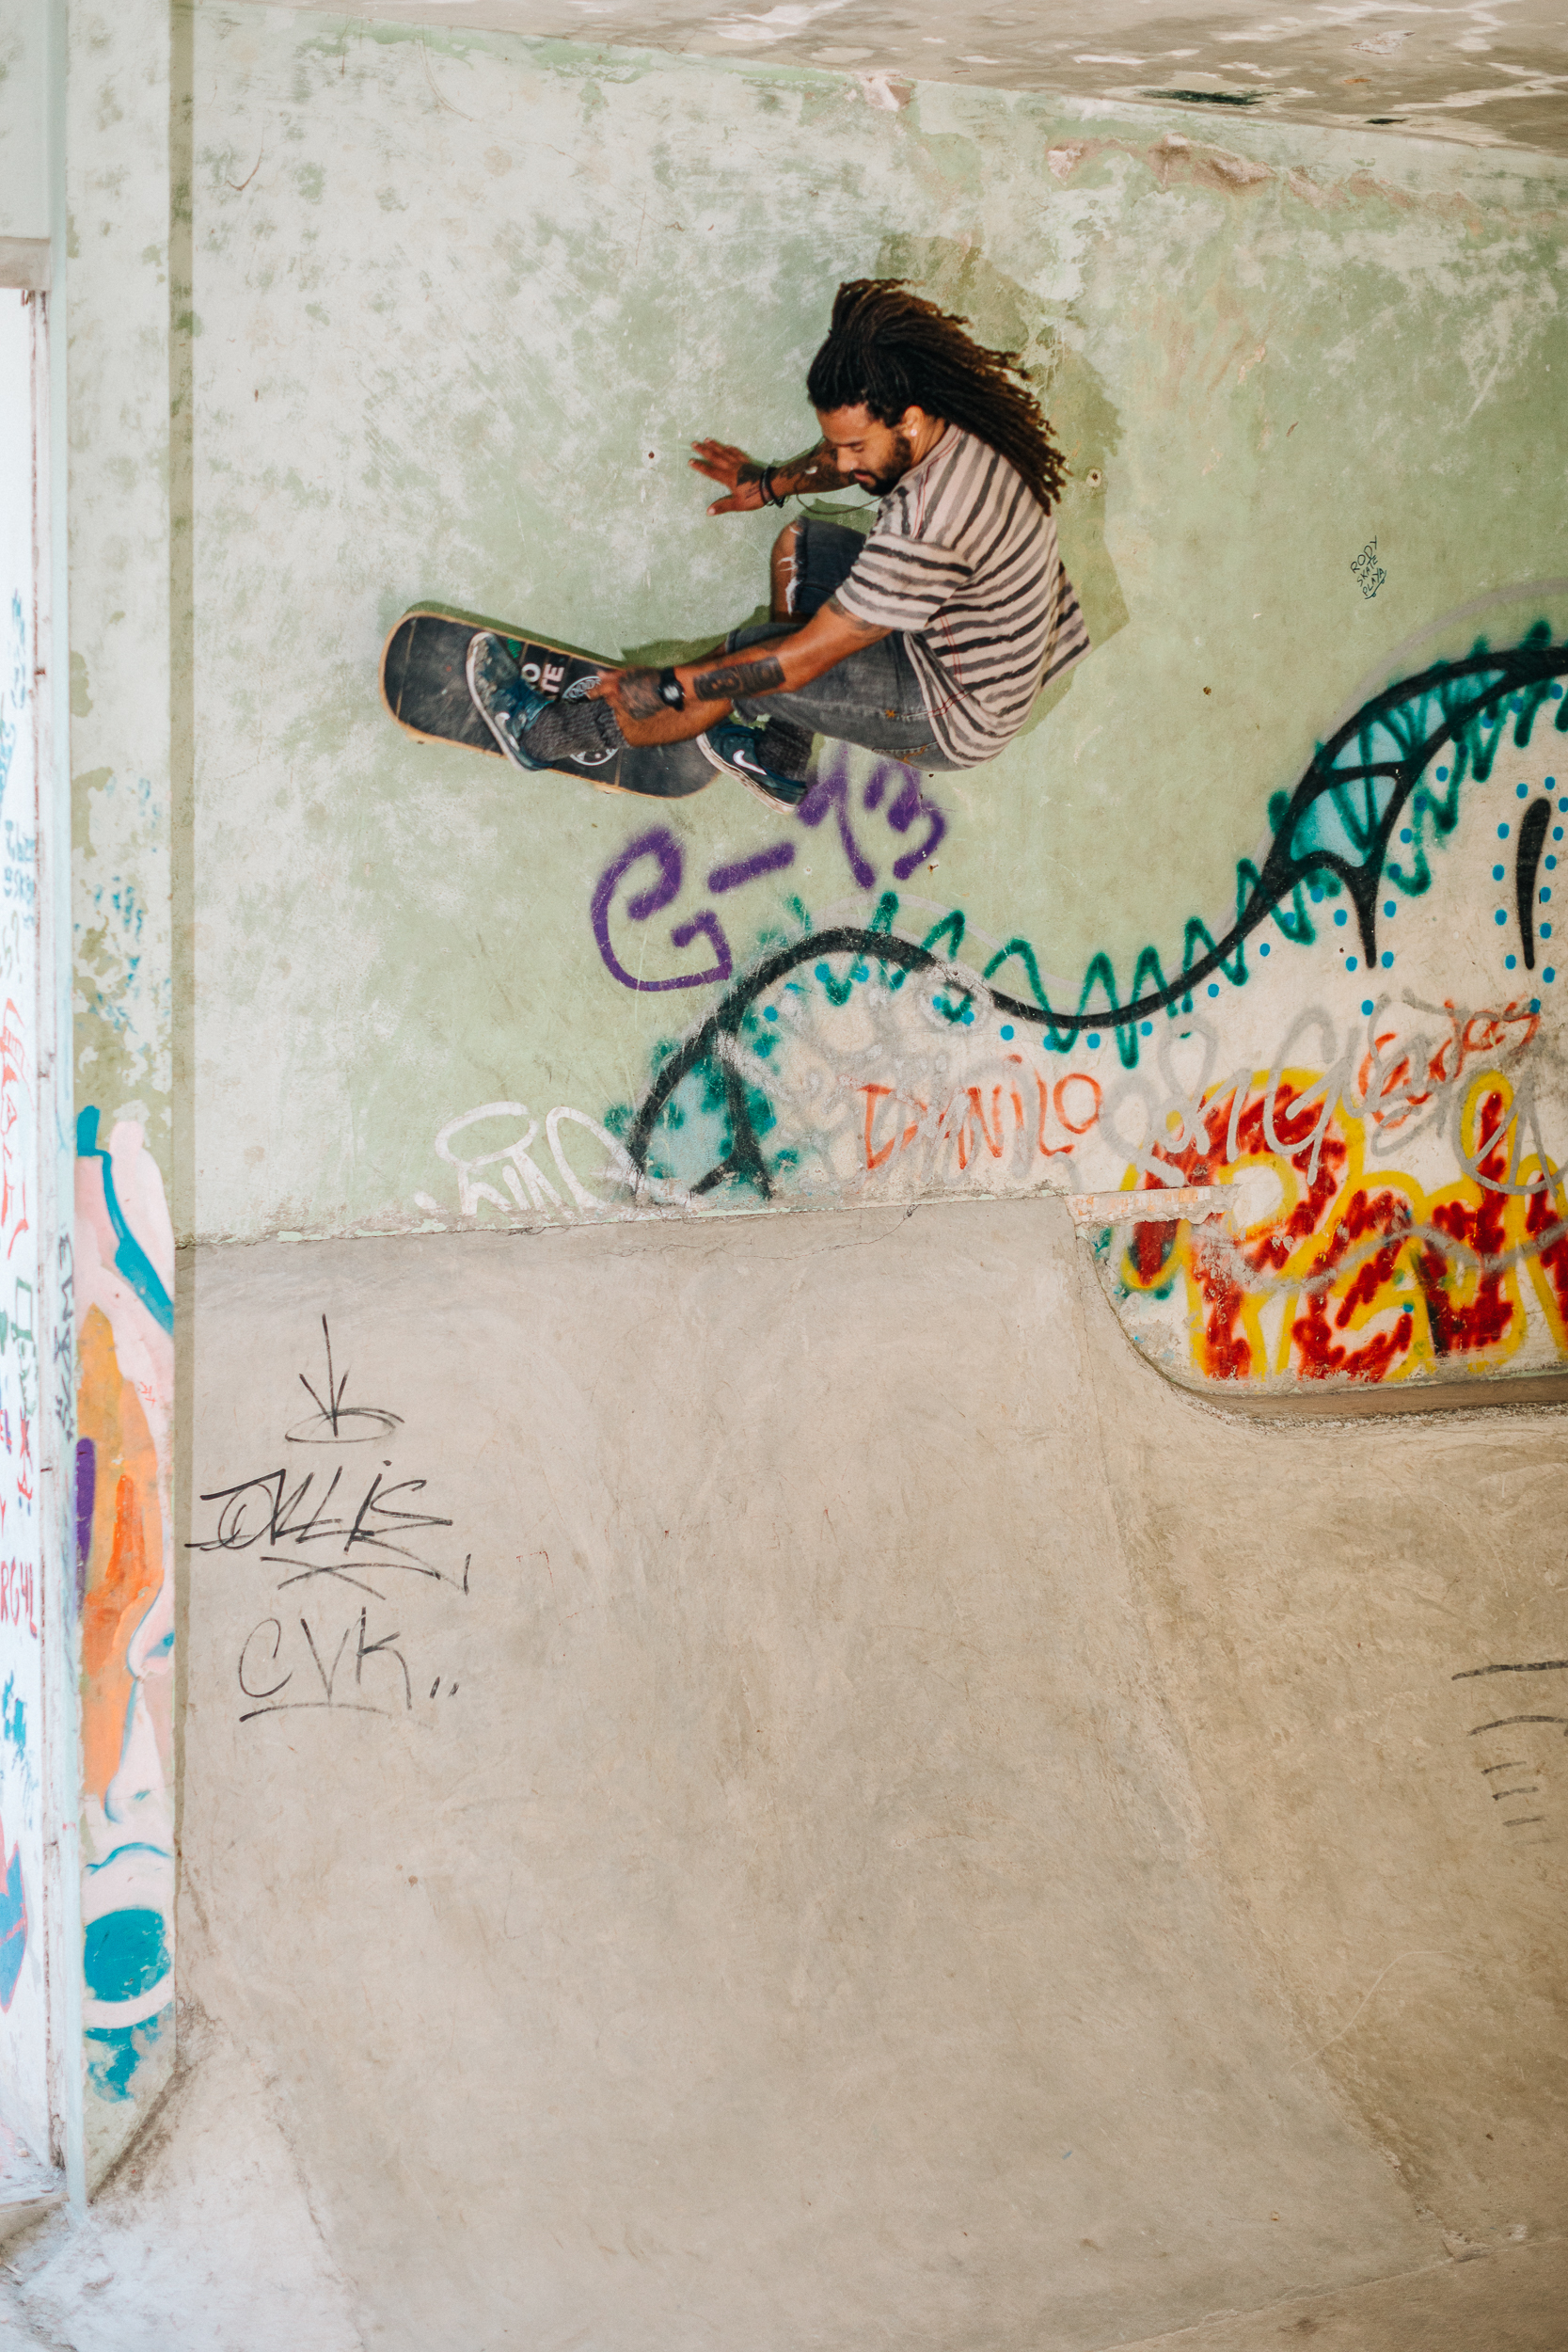 OFF THE WALL in CUBA